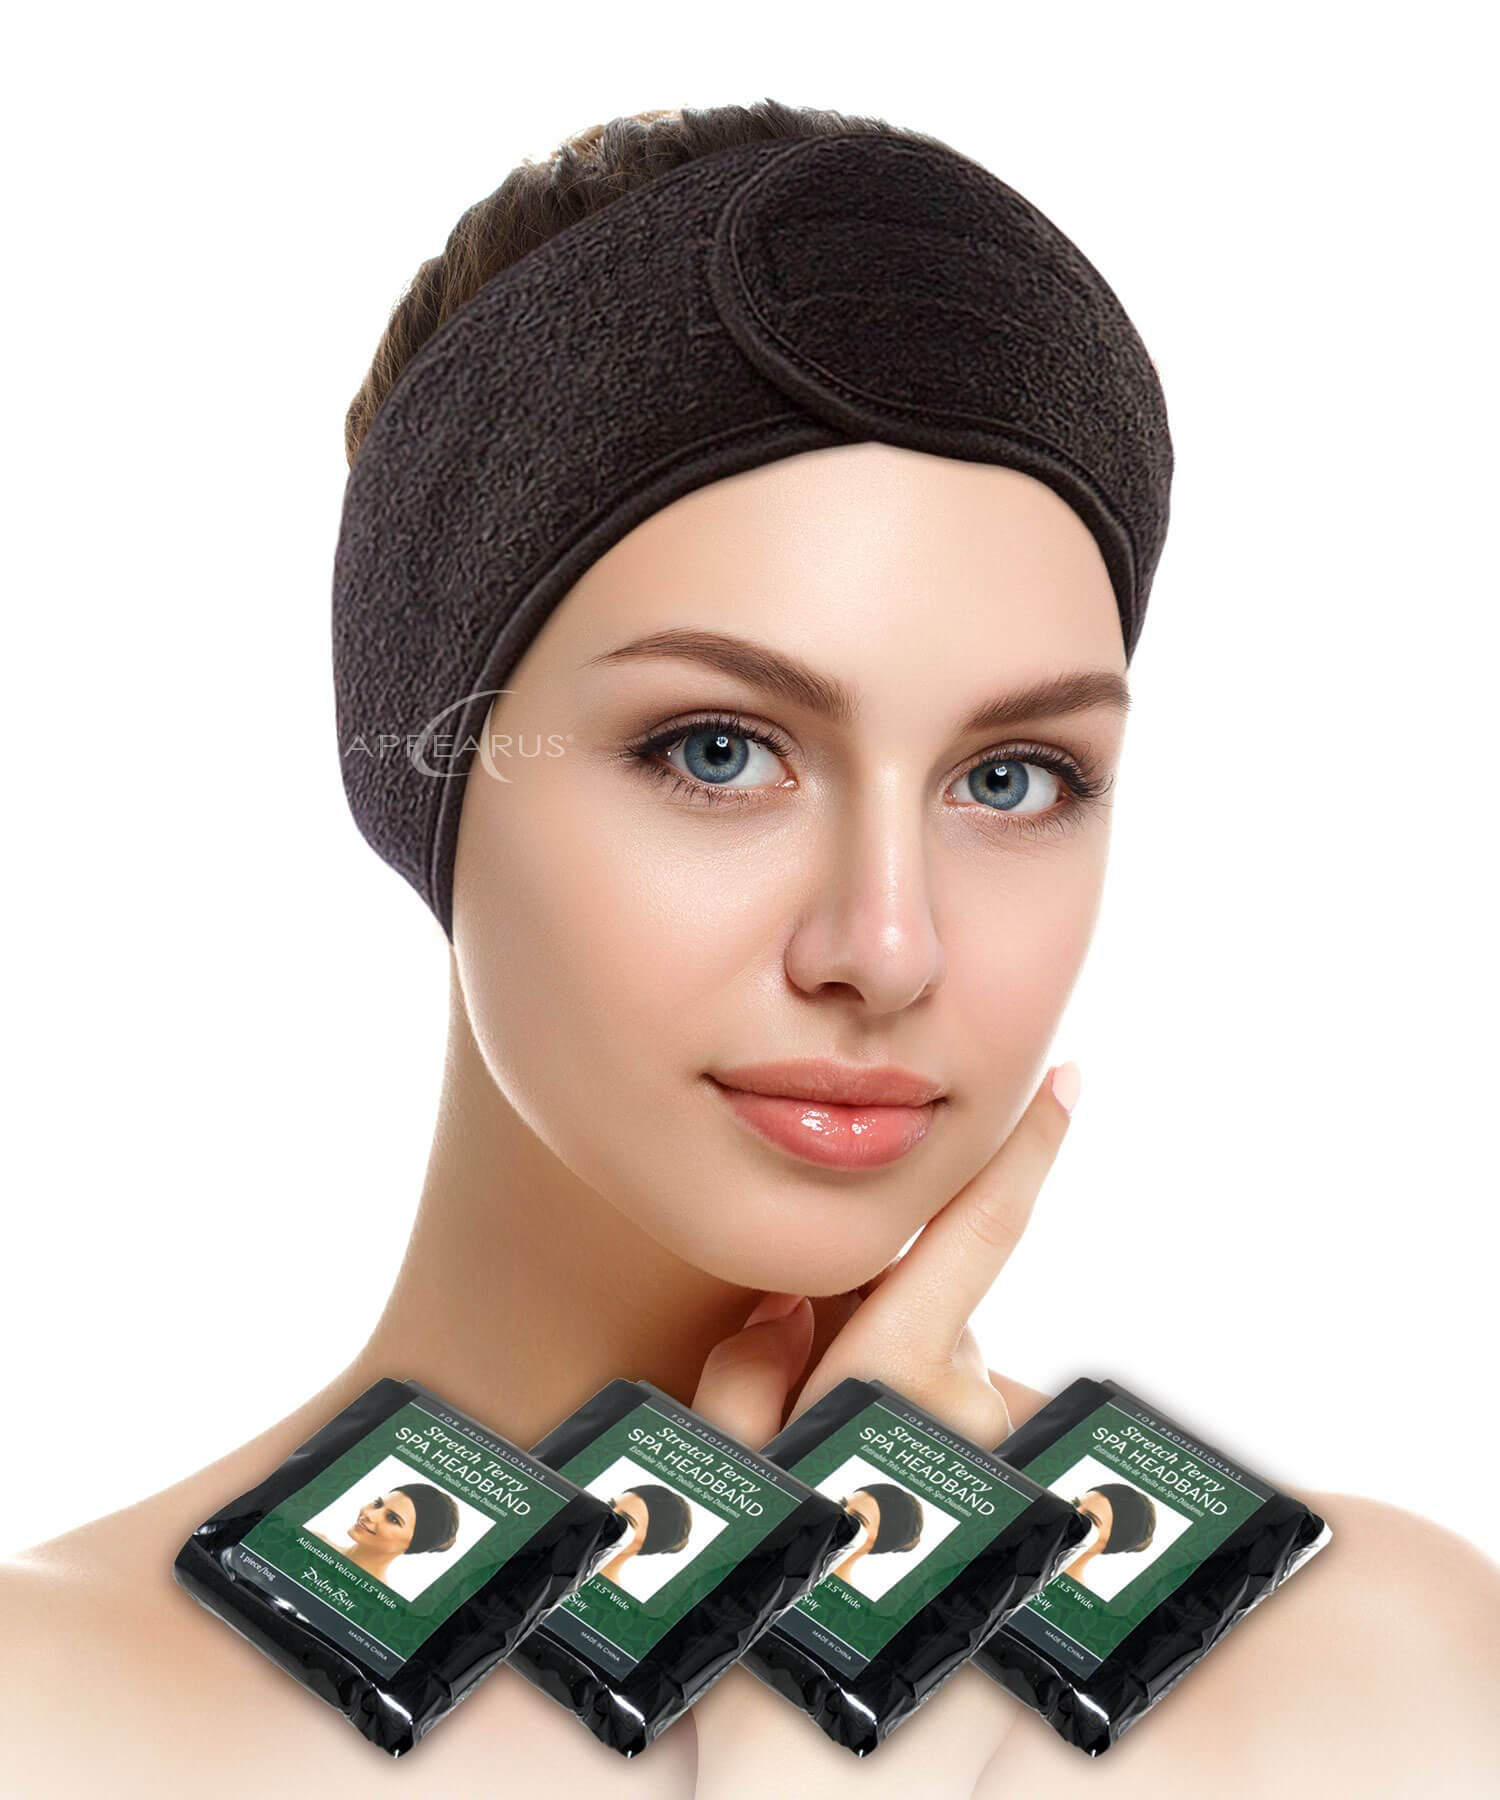 Spa Facial Headband - APPEARUS Head Wrap Terry Cloth Headbands Stretch Towel with Closure for Bath, Makeup and Sport (4 Count/Black)